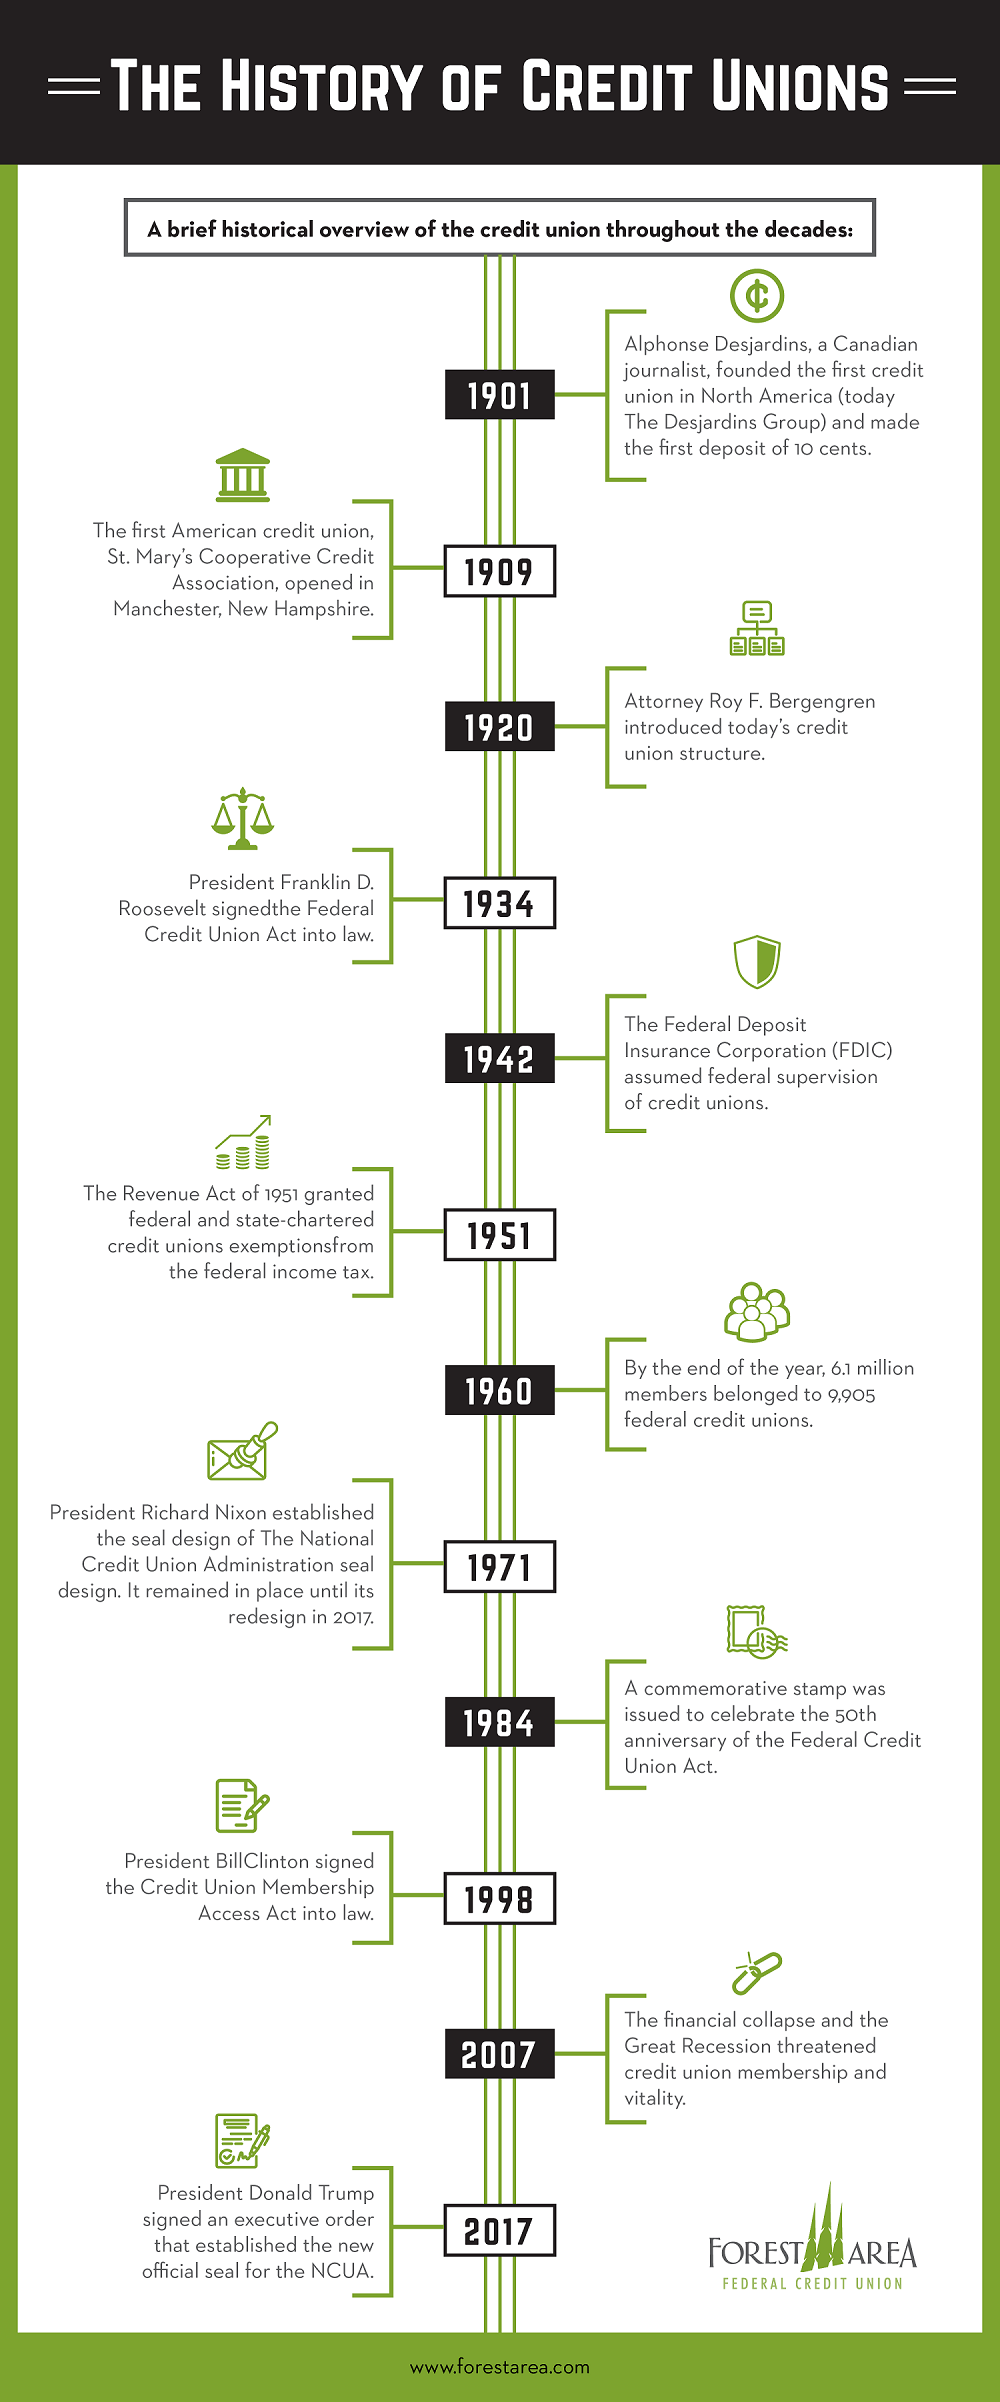 Historical Overview of the Credit Union